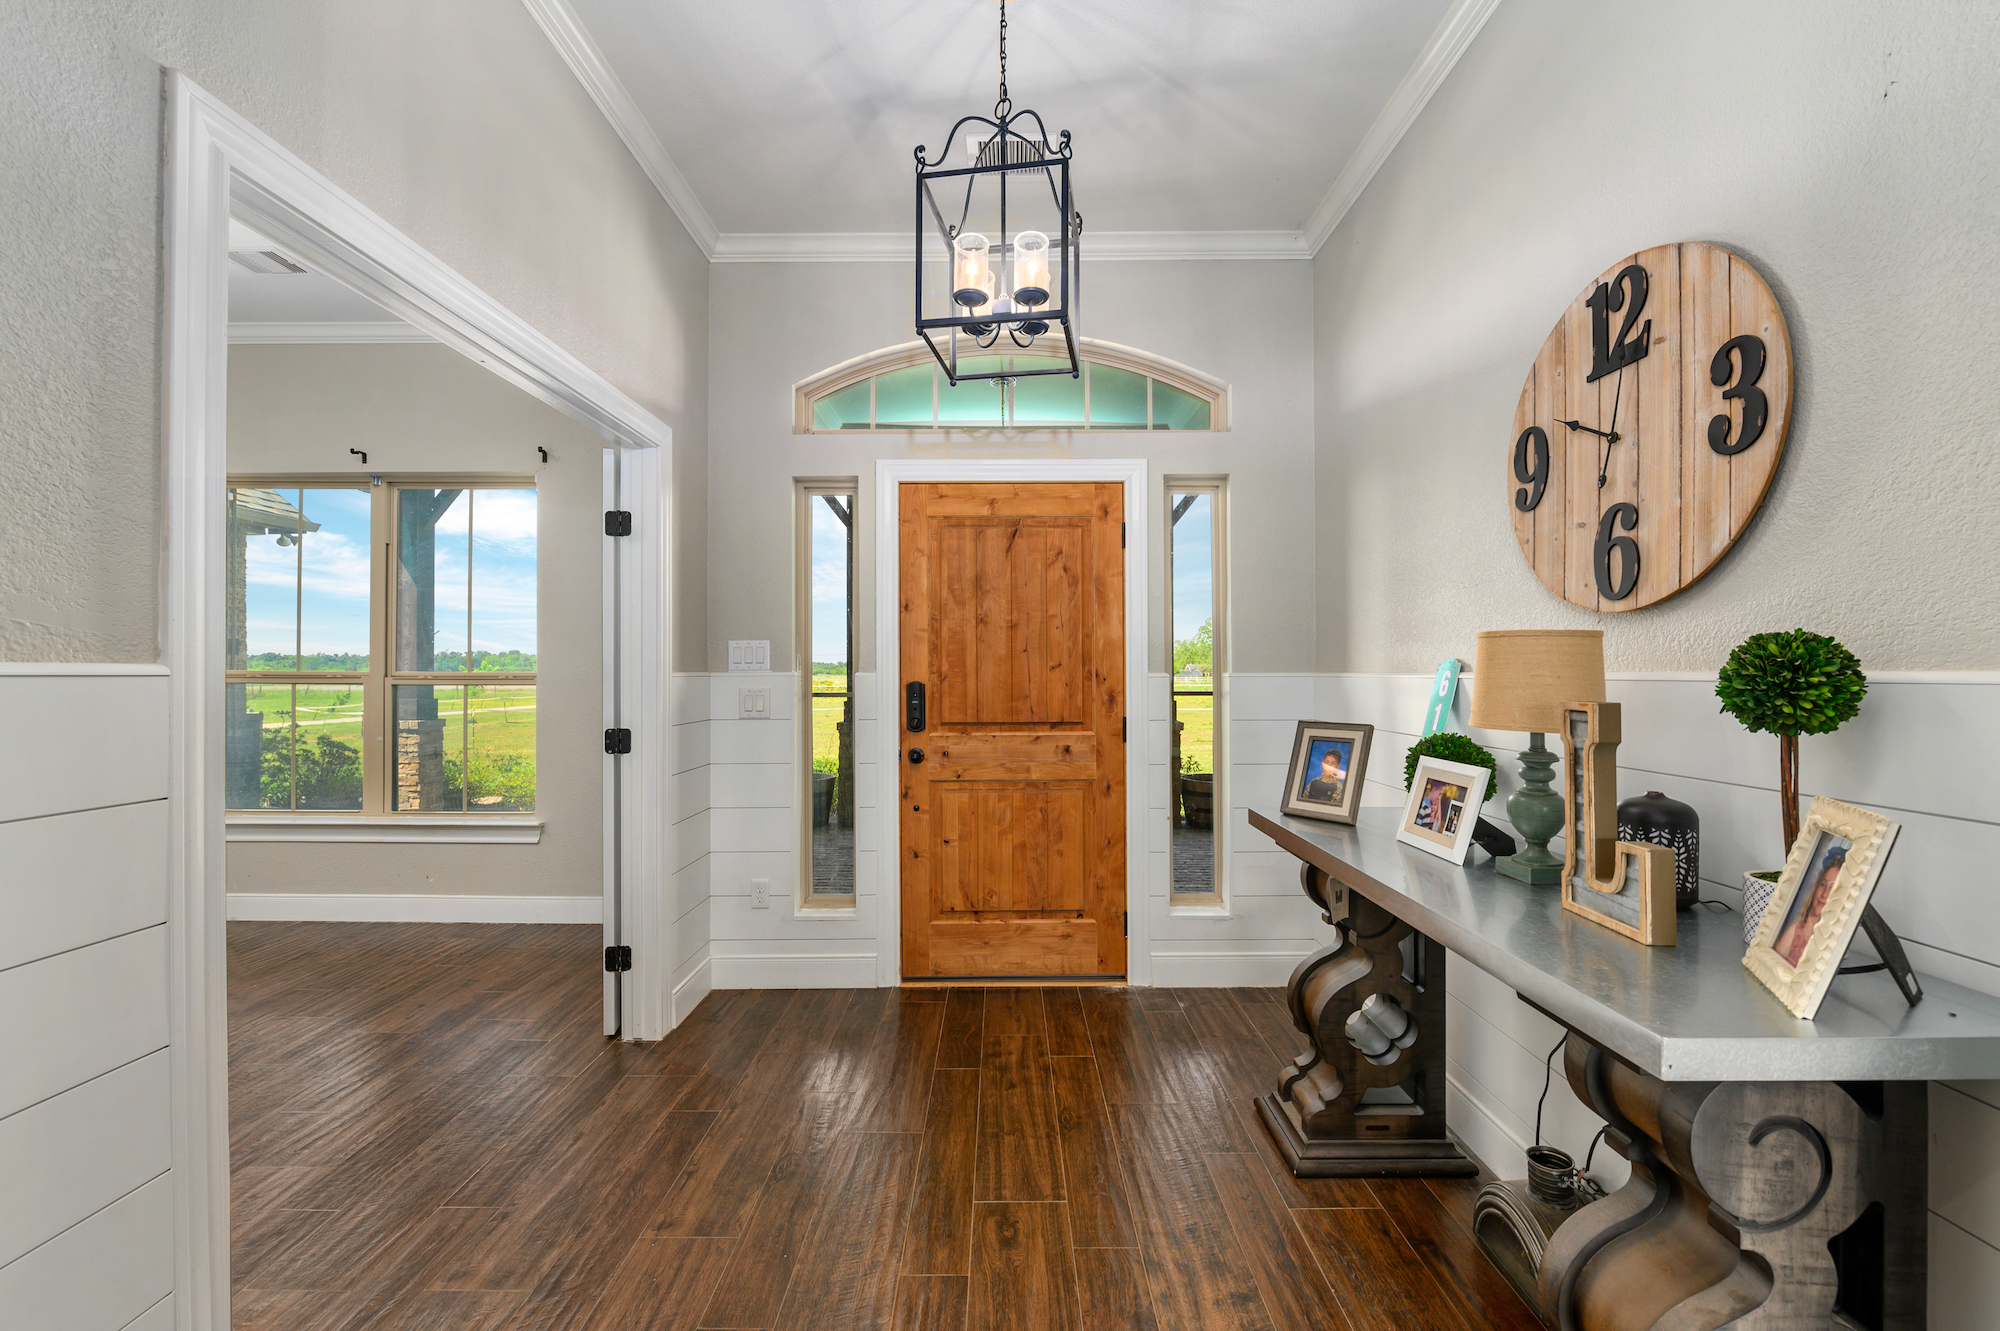 Custom Country Home with Acreage in Sealy - Image 11 of 46